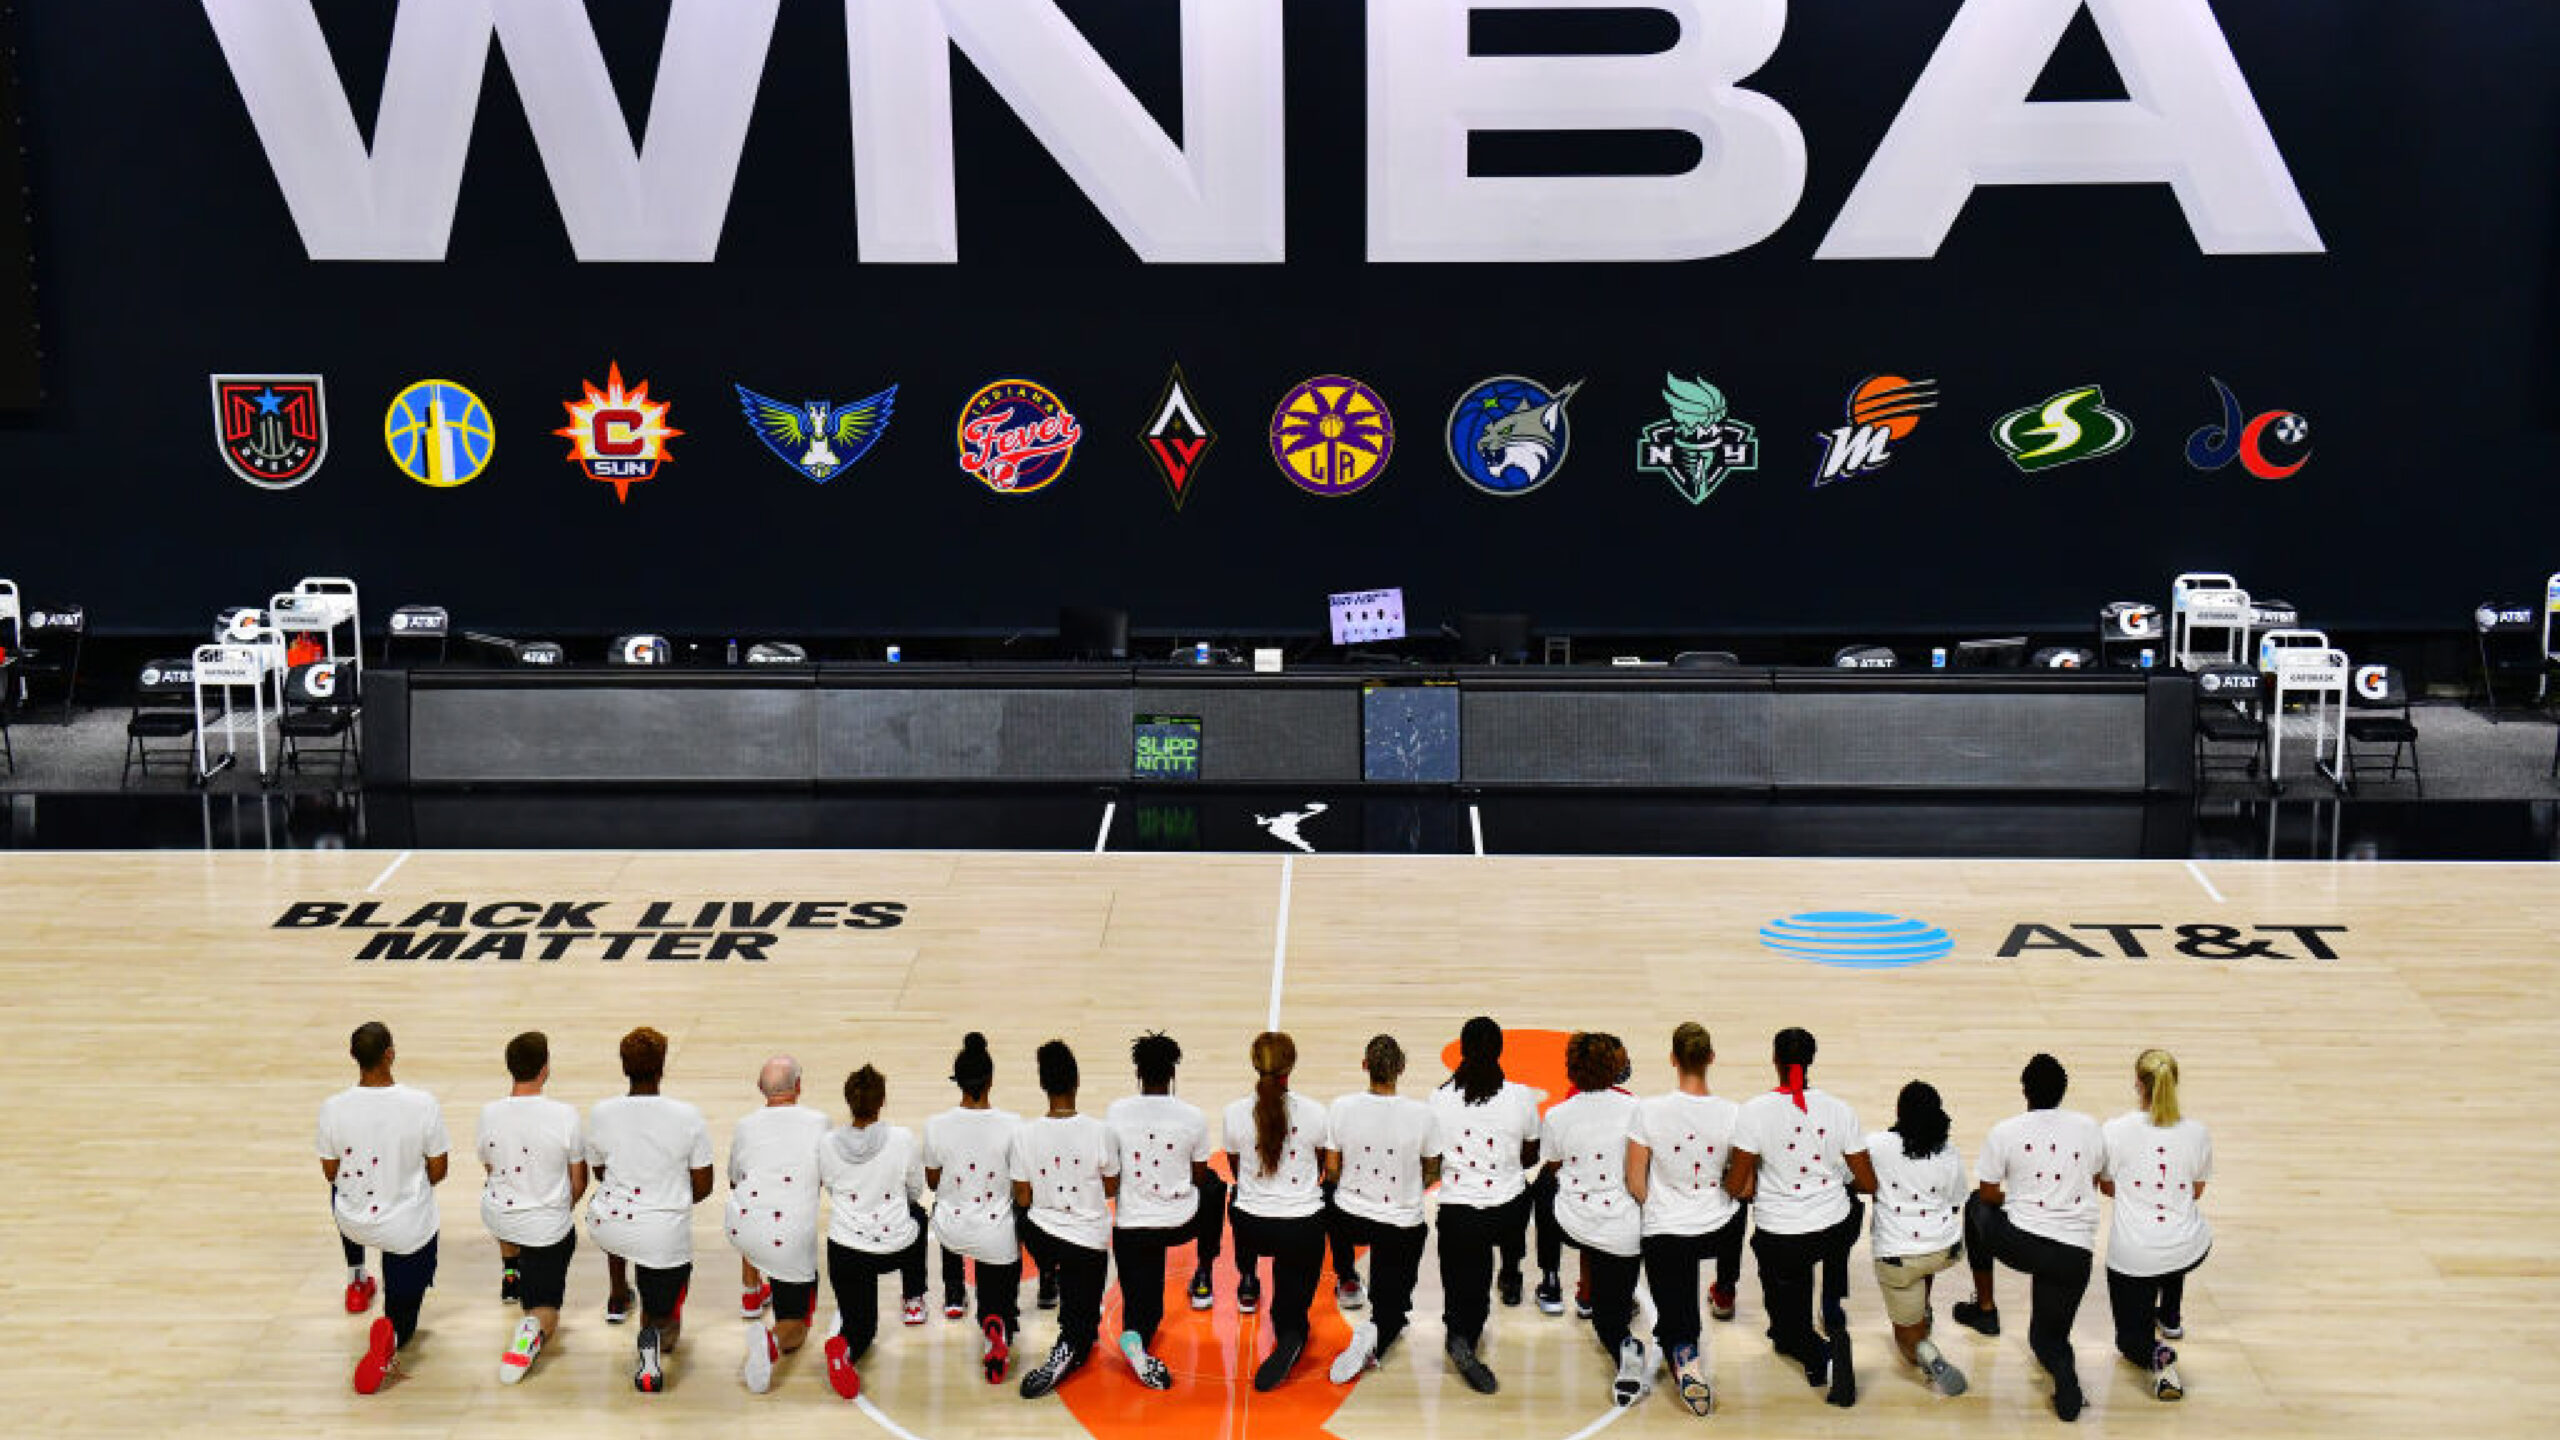 PALMETTO, FLORIDA - AUGUST 26: After the WNBA announcement of the postponed games for the evening, the Washington Mystics each wear white T-shirts with seven bullets on the back protesting the shooting of Jacob Blake by Kenosha, Wisconsin police at Feld Entertainment Center on August 26, 2020 in Palmetto, Florida. (Photo by Julio Aguilar/Getty Images)